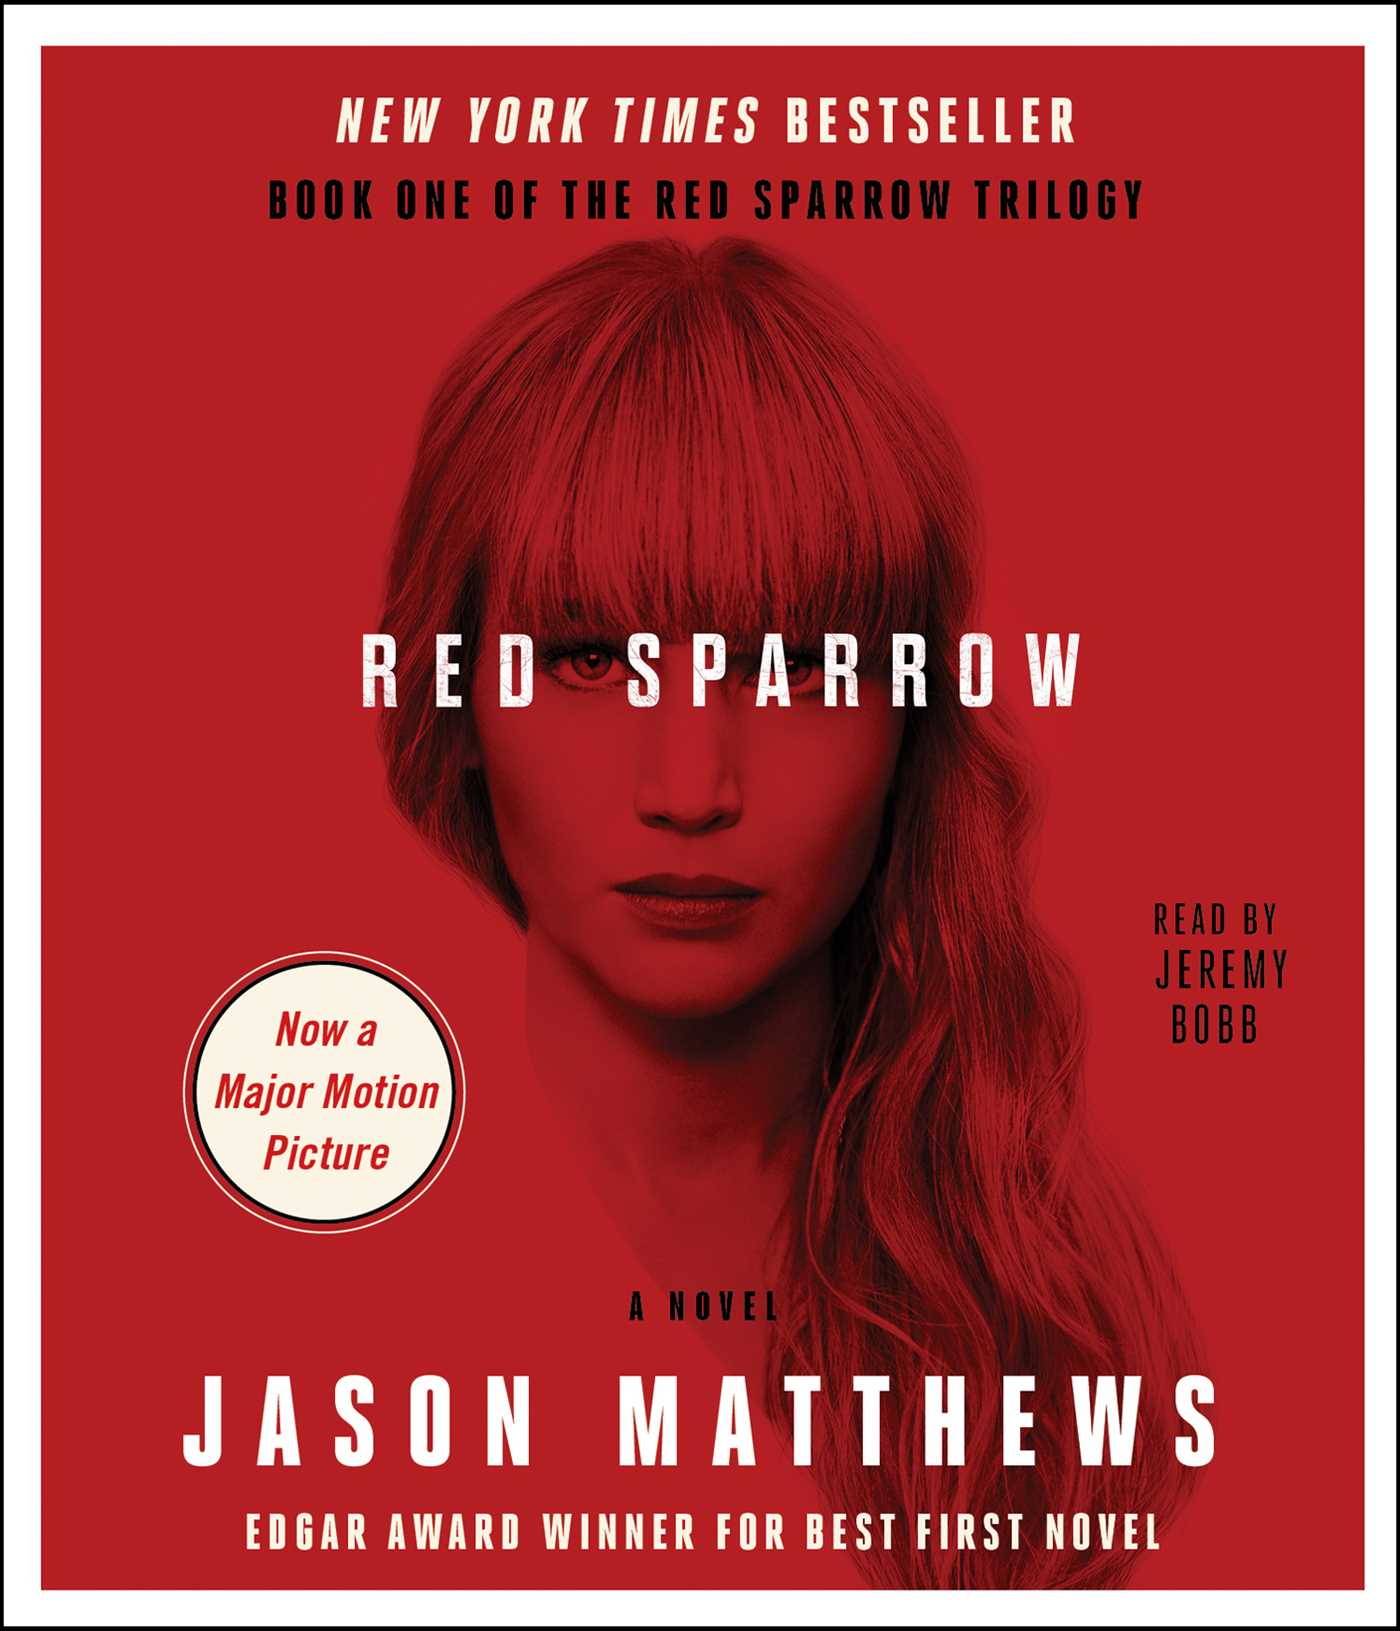 Red sparrow 9781508243861 hr